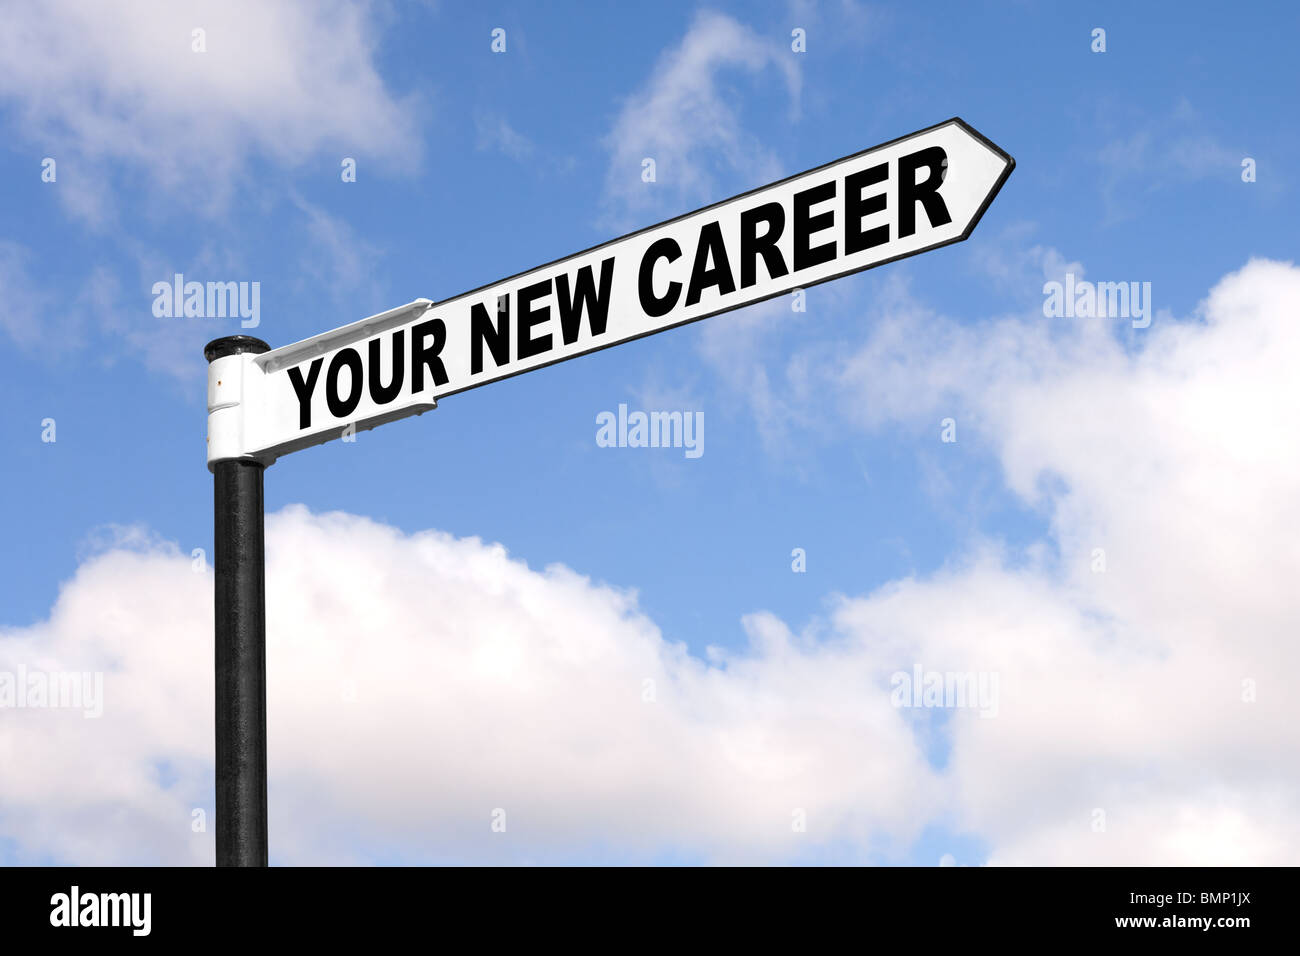 Concept image of a black and white signpost with the words Your New Career against a blue cloudy sky. - Stock Image